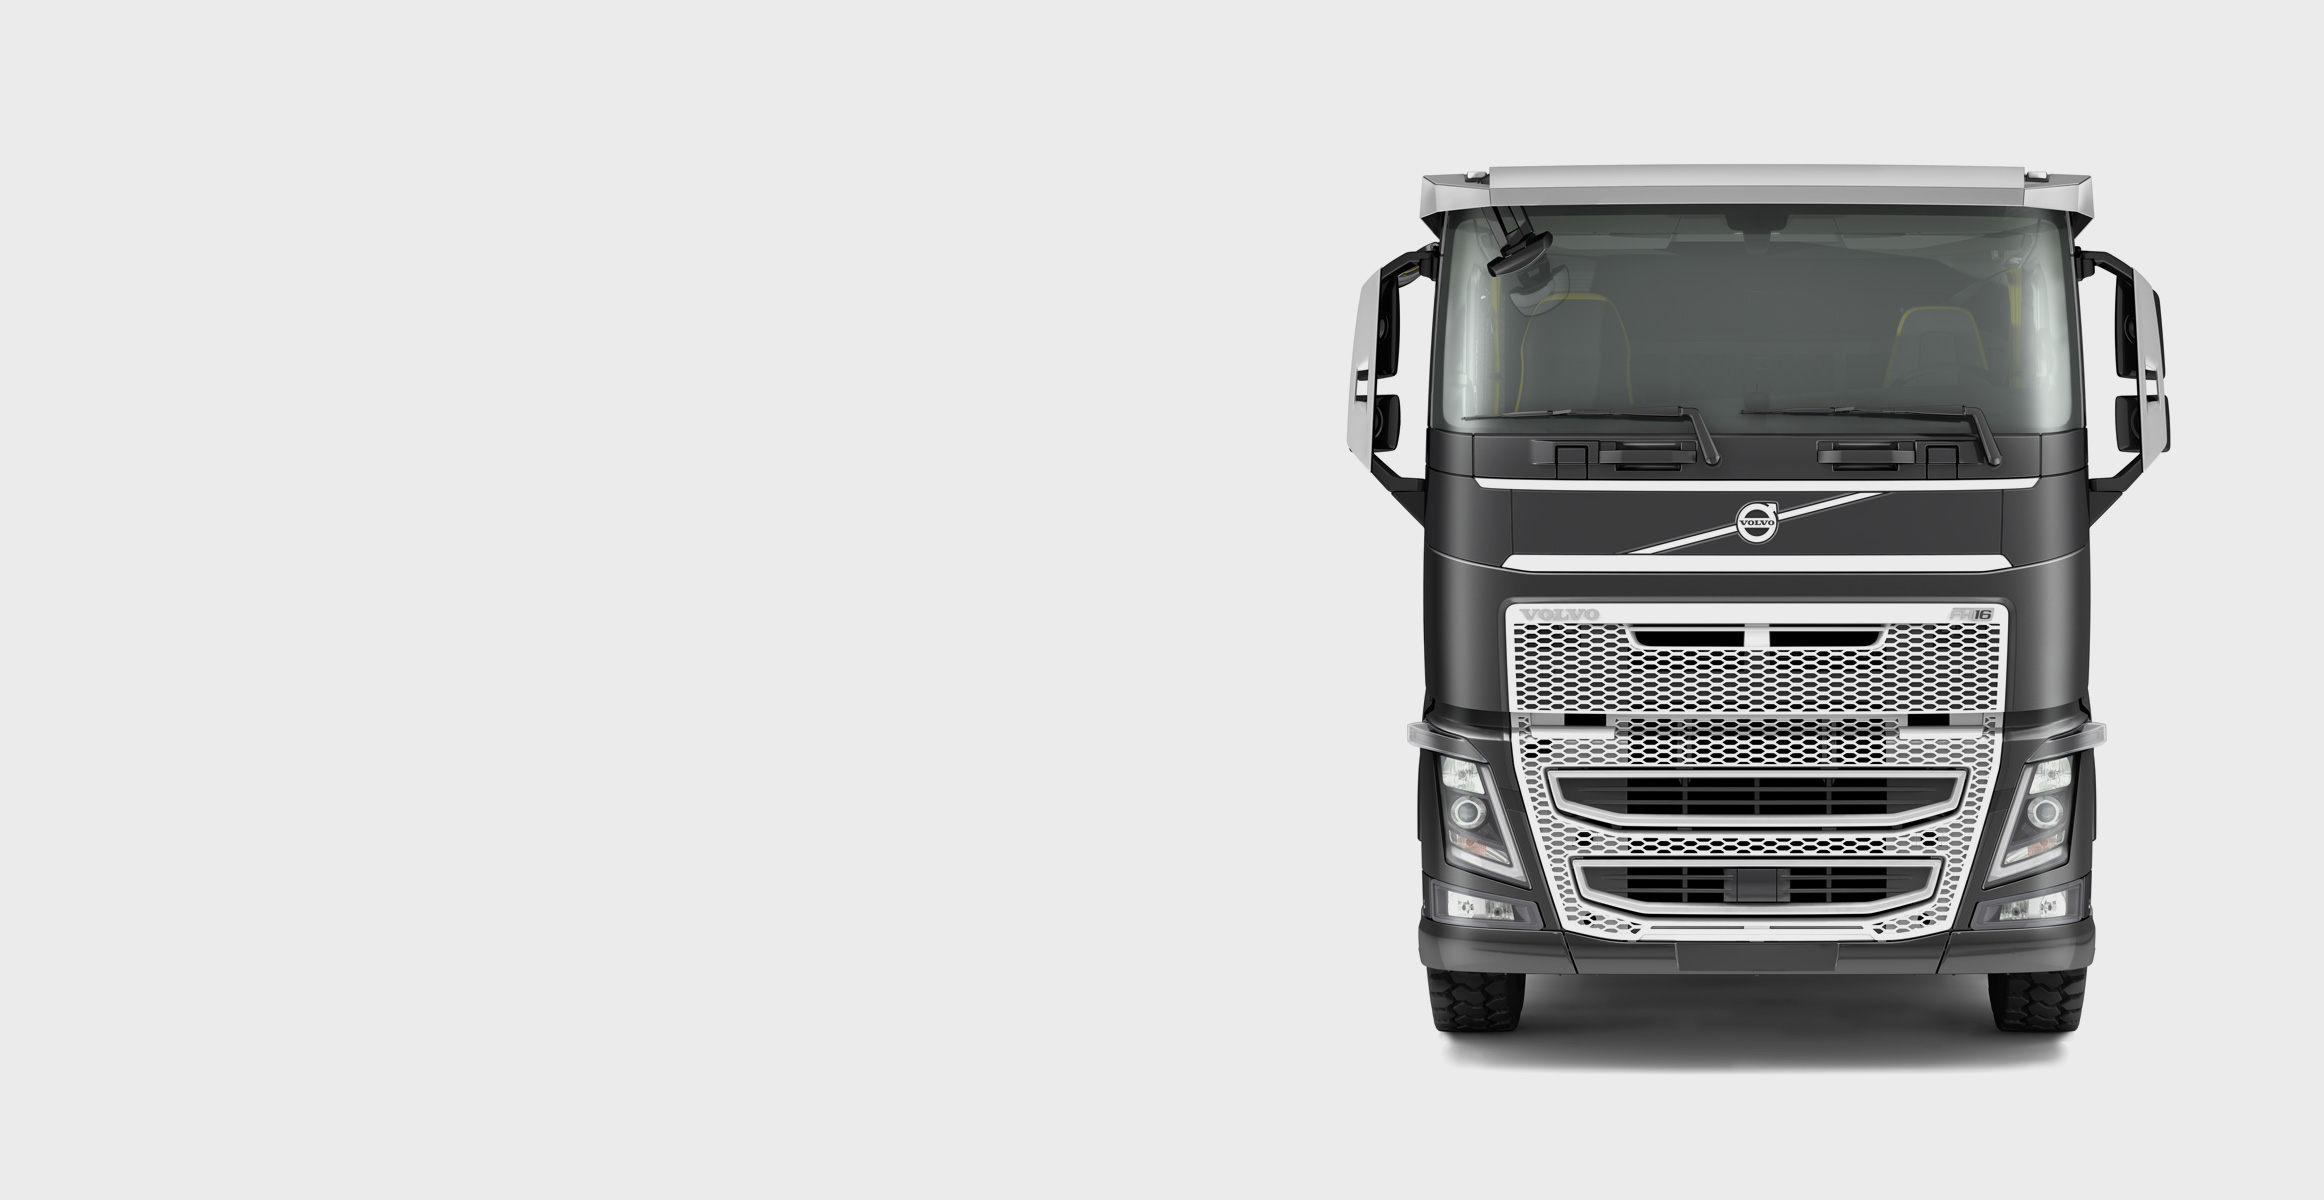 driving vhd vocational drive parts year truck the volvo model vn test